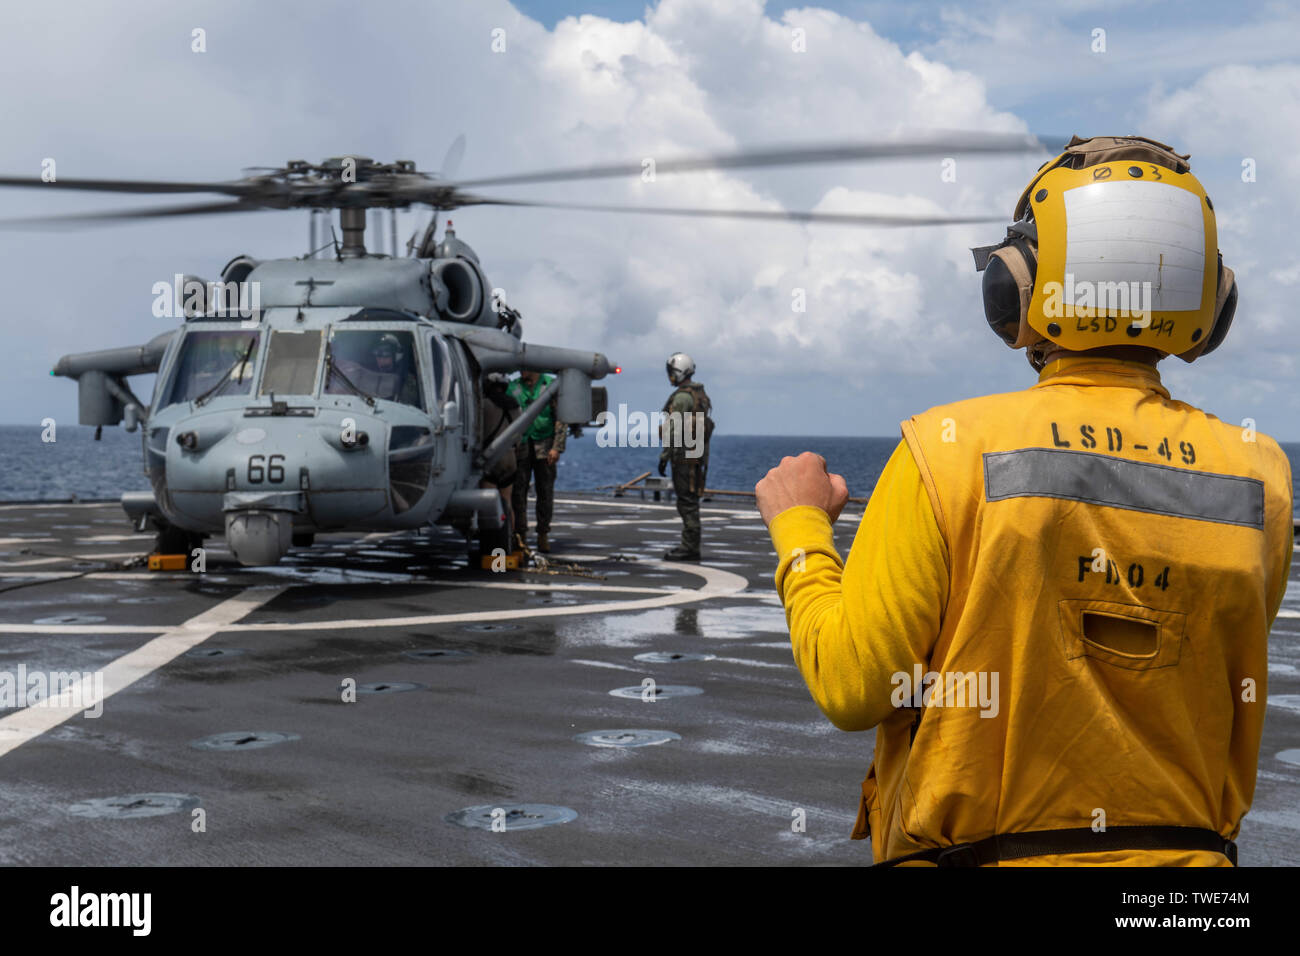 190615-N-HD110-0106  SOUTH CHINA SEA (June 15, 2019) Sailors observe an MH-60 Sea Hawk helicopter, attached to Helicopter Sea Combat Squadron (HSC) 21, as it lands on the flight deck of the Harpers Ferry-class amphibious dock landing ship USS Harpers Ferry (LSD 49). Harpers Ferry is part of the Boxer Amphibious Ready Group (ARG) and 11th Marine Expeditionary Unit (MEU) team and is deployed to the U.S. 7th Fleet area of operations to support regional stability, reassure partners and allies, and maintain a presence postured to respond to any crisis ranging from humanitarian assistance to conting - Stock Image